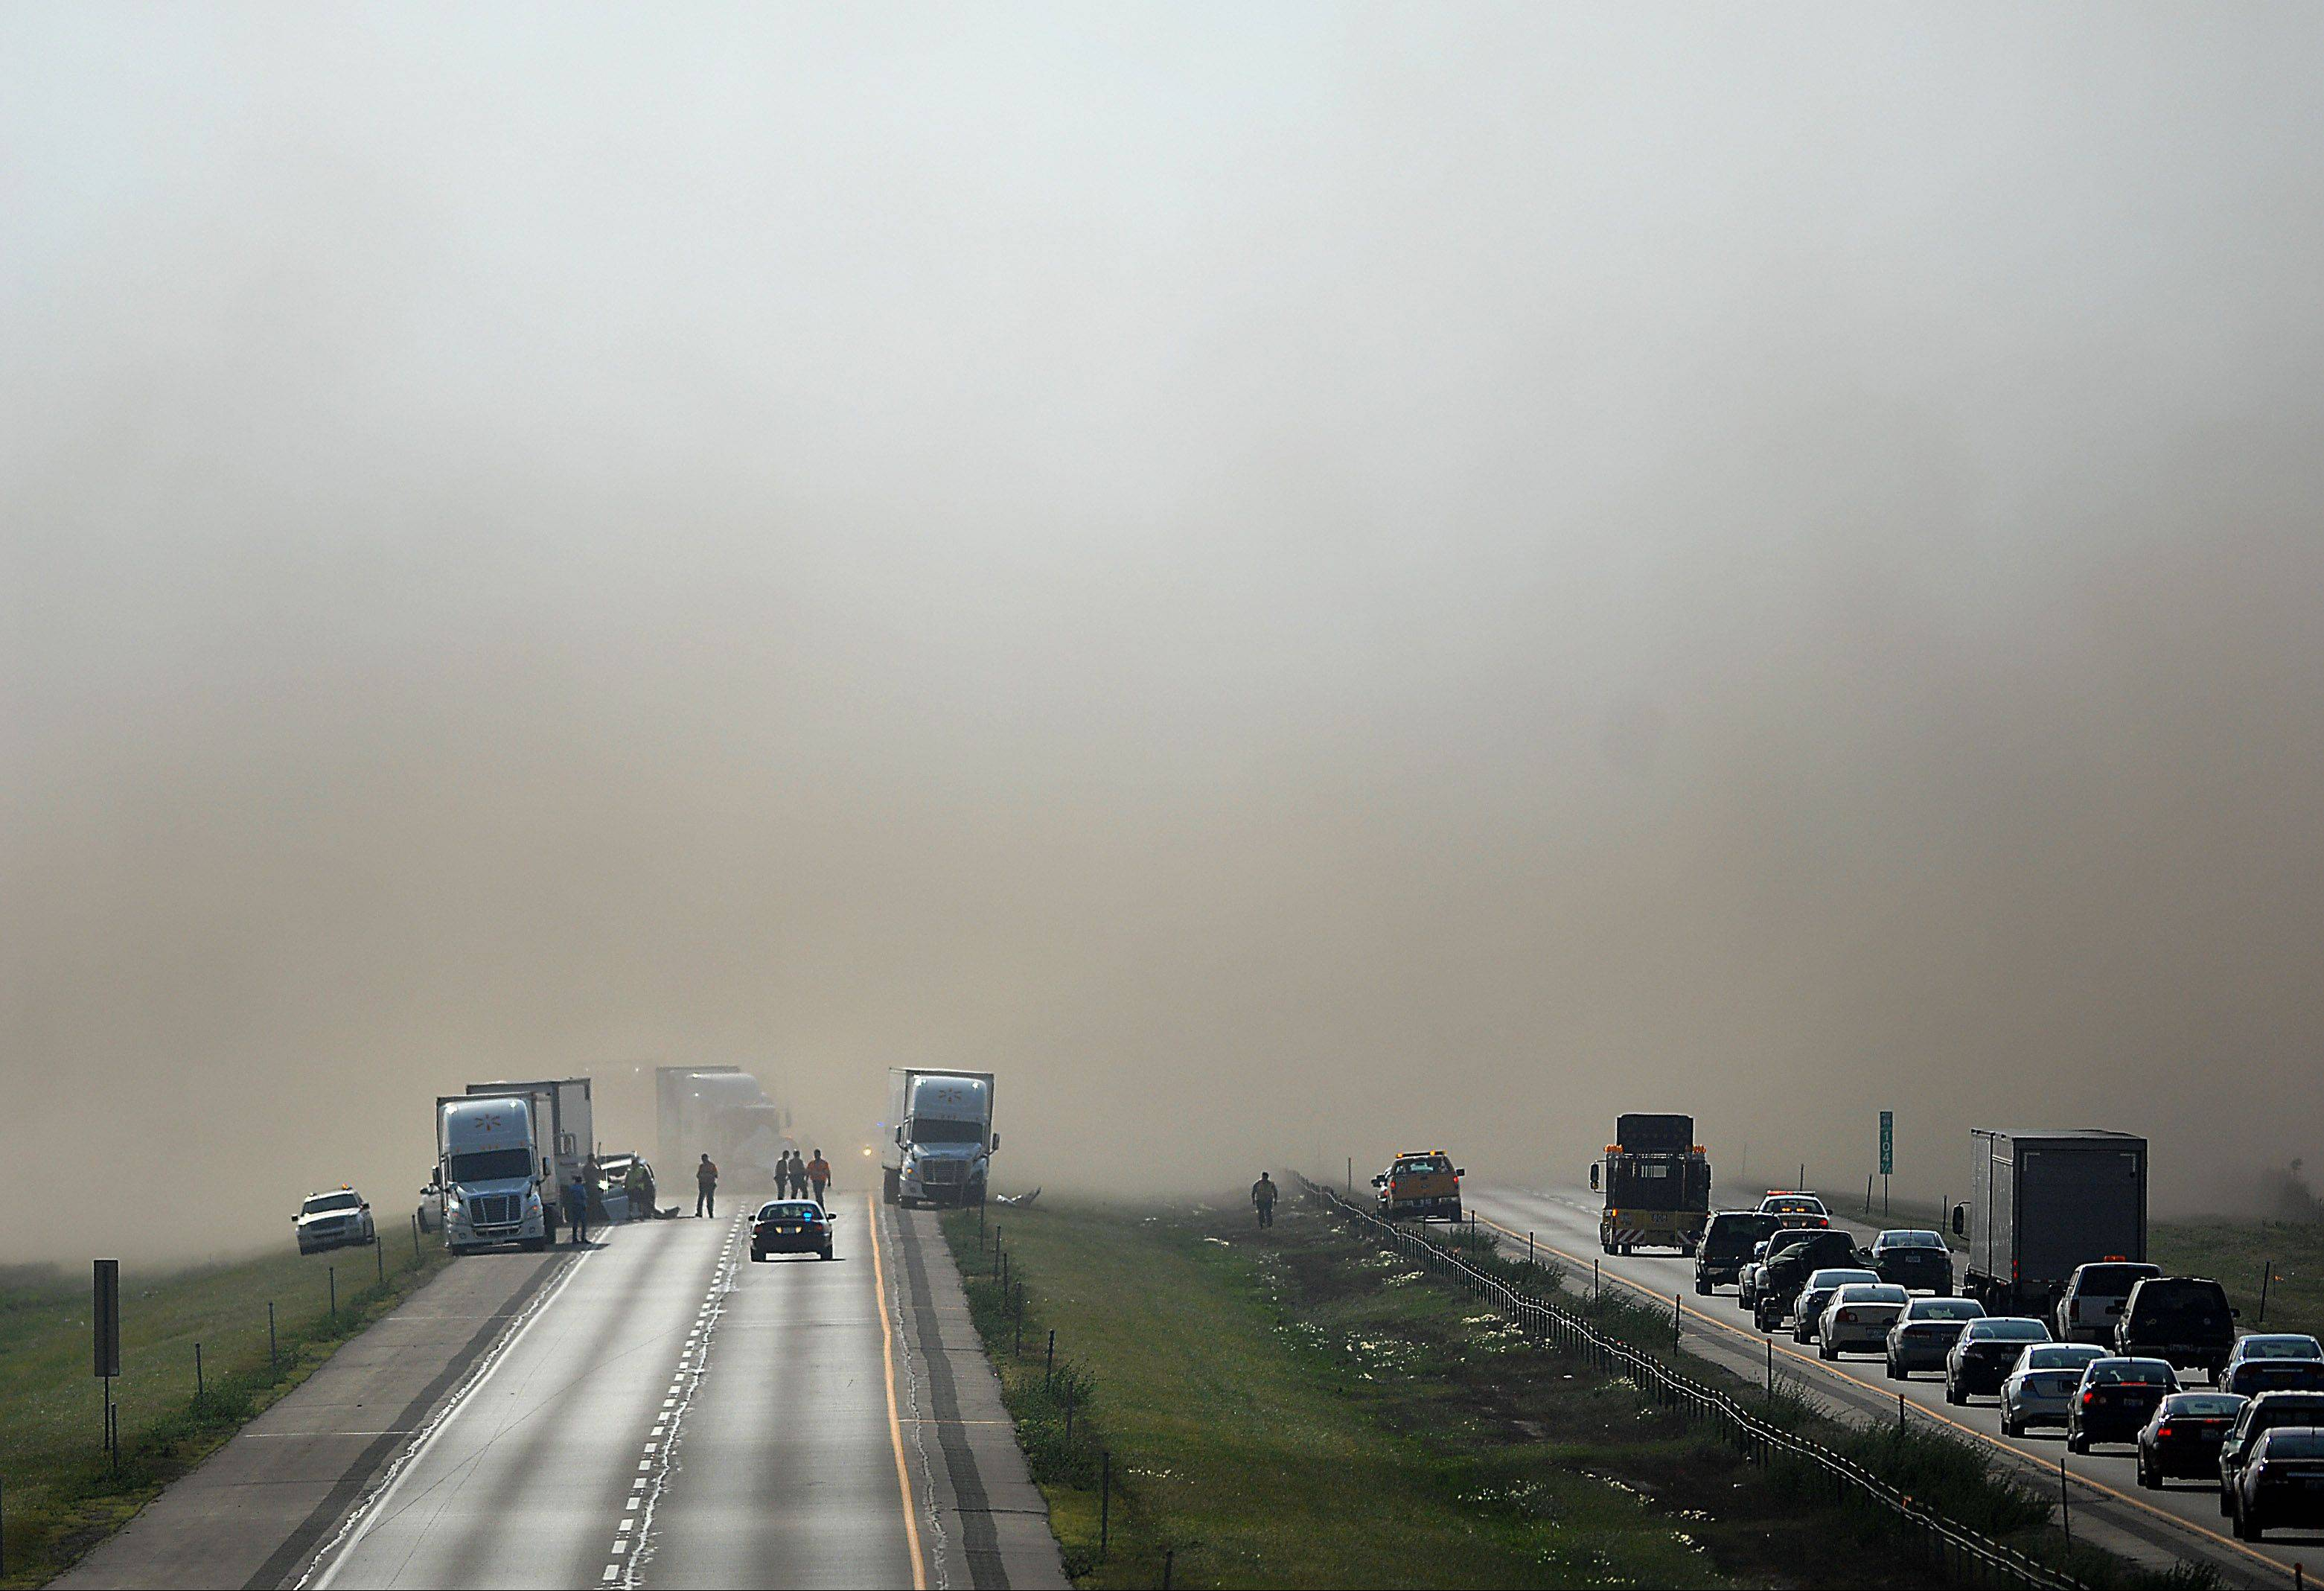 Interstate 88 near Dauberman Road in Kaneville is shut down in both directions just after 4 p.m. as police investigate a multivehicle accident. High winds create a wall of dust.